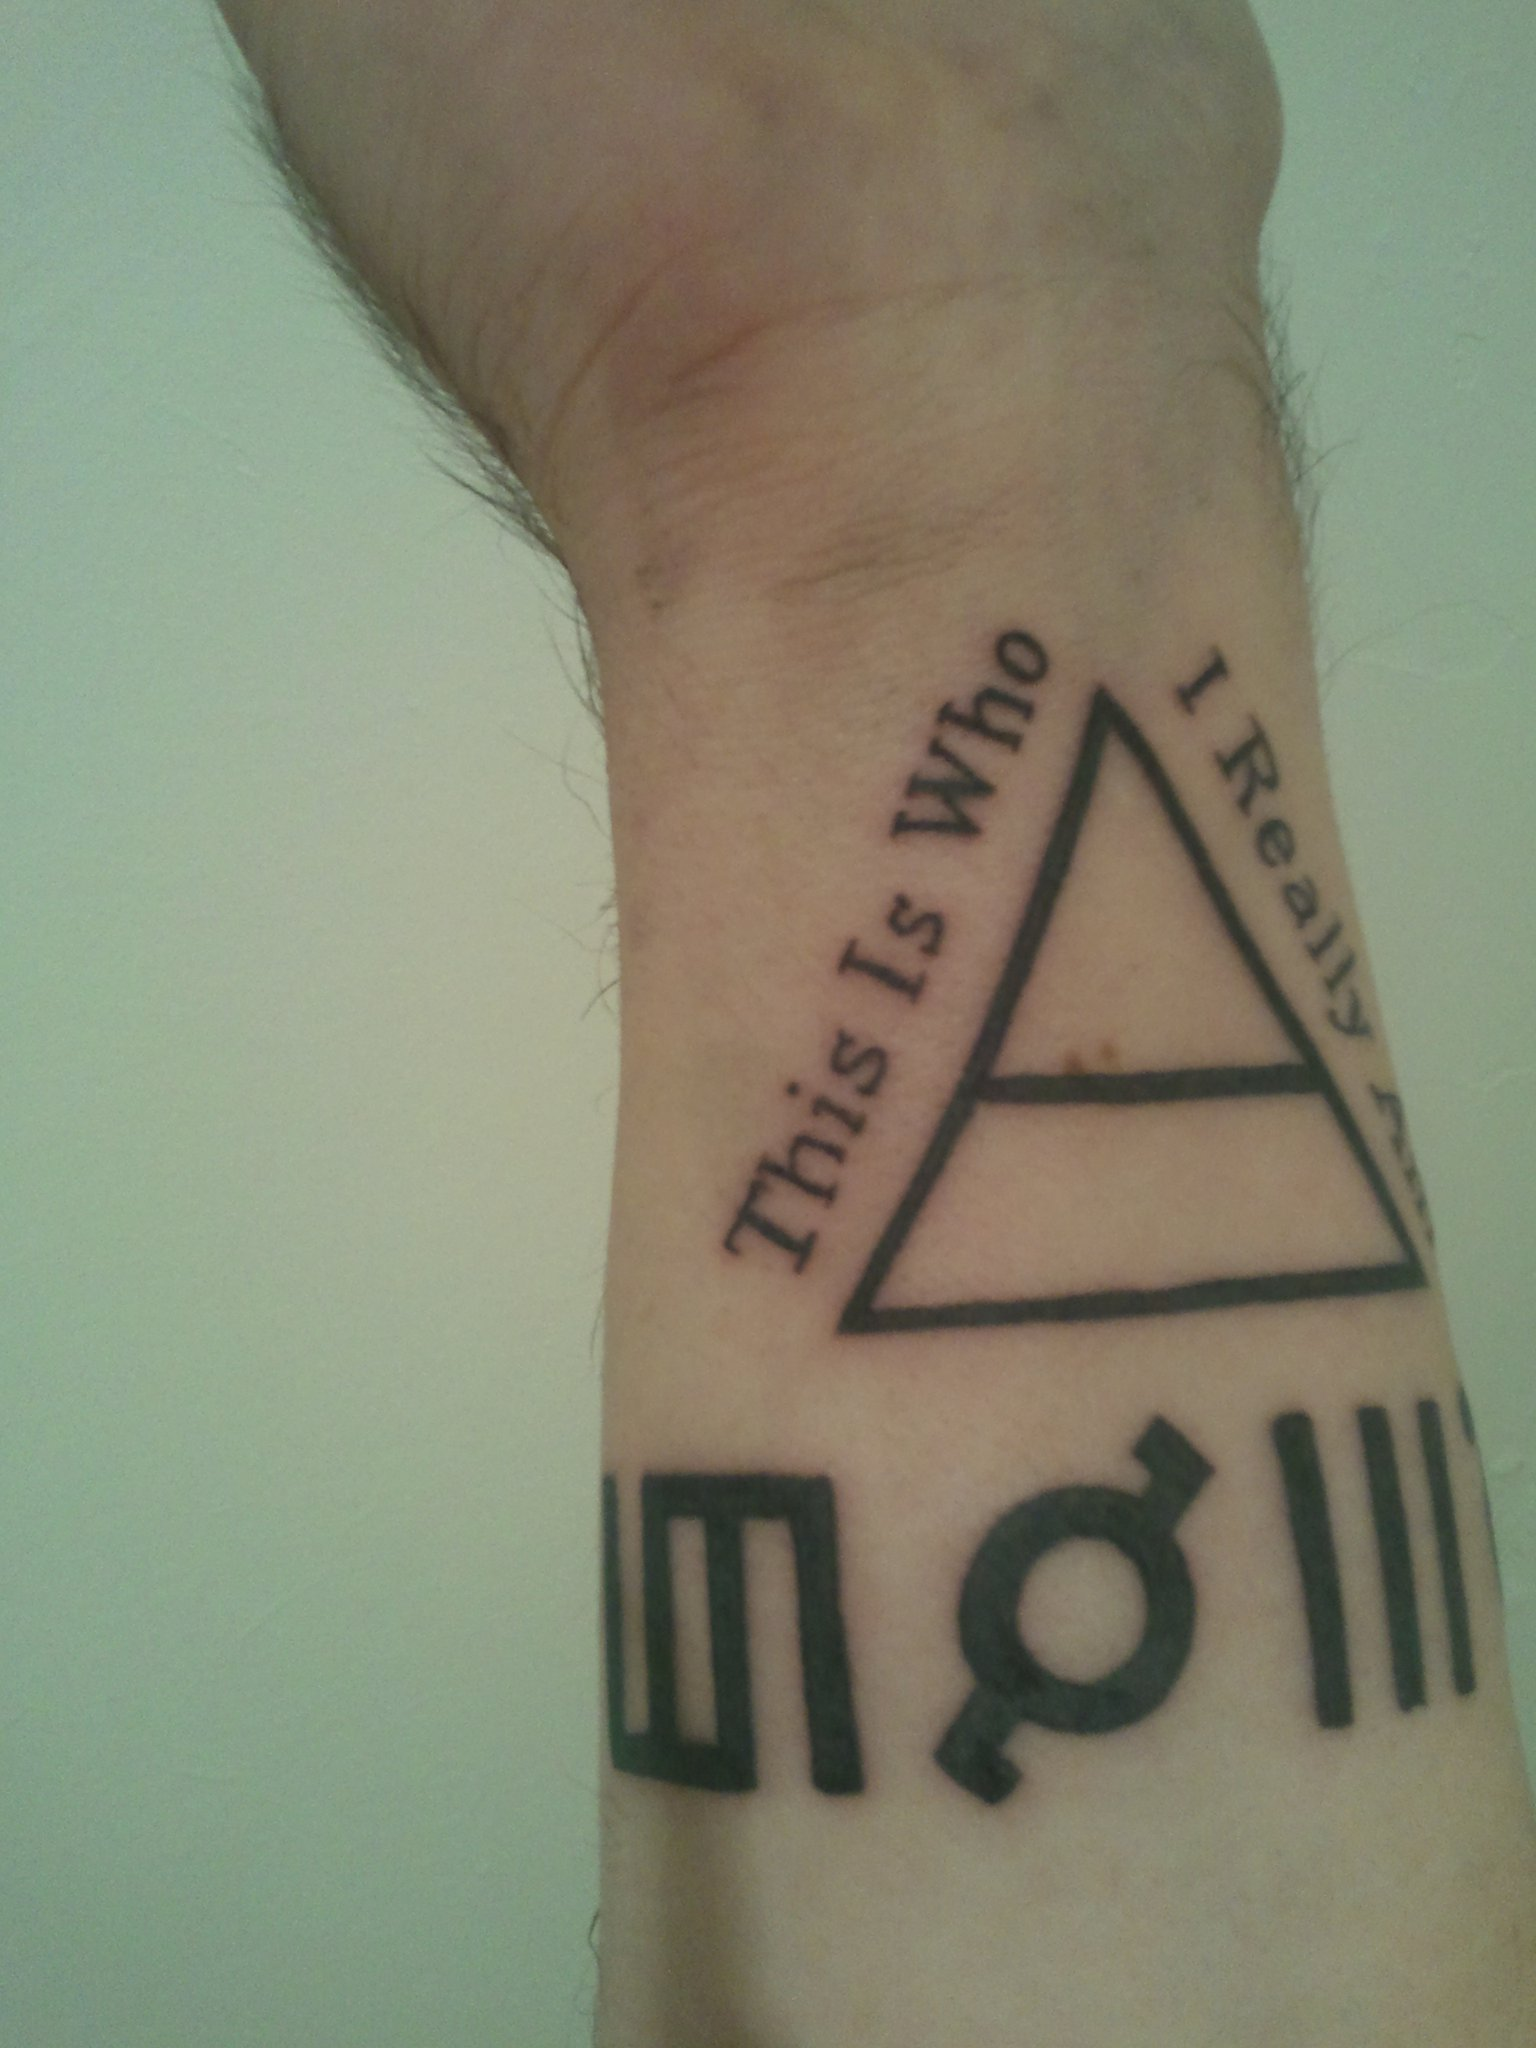 """30 Seconds to Mars - Tattoo """"This Is Who I Really Am"""""""